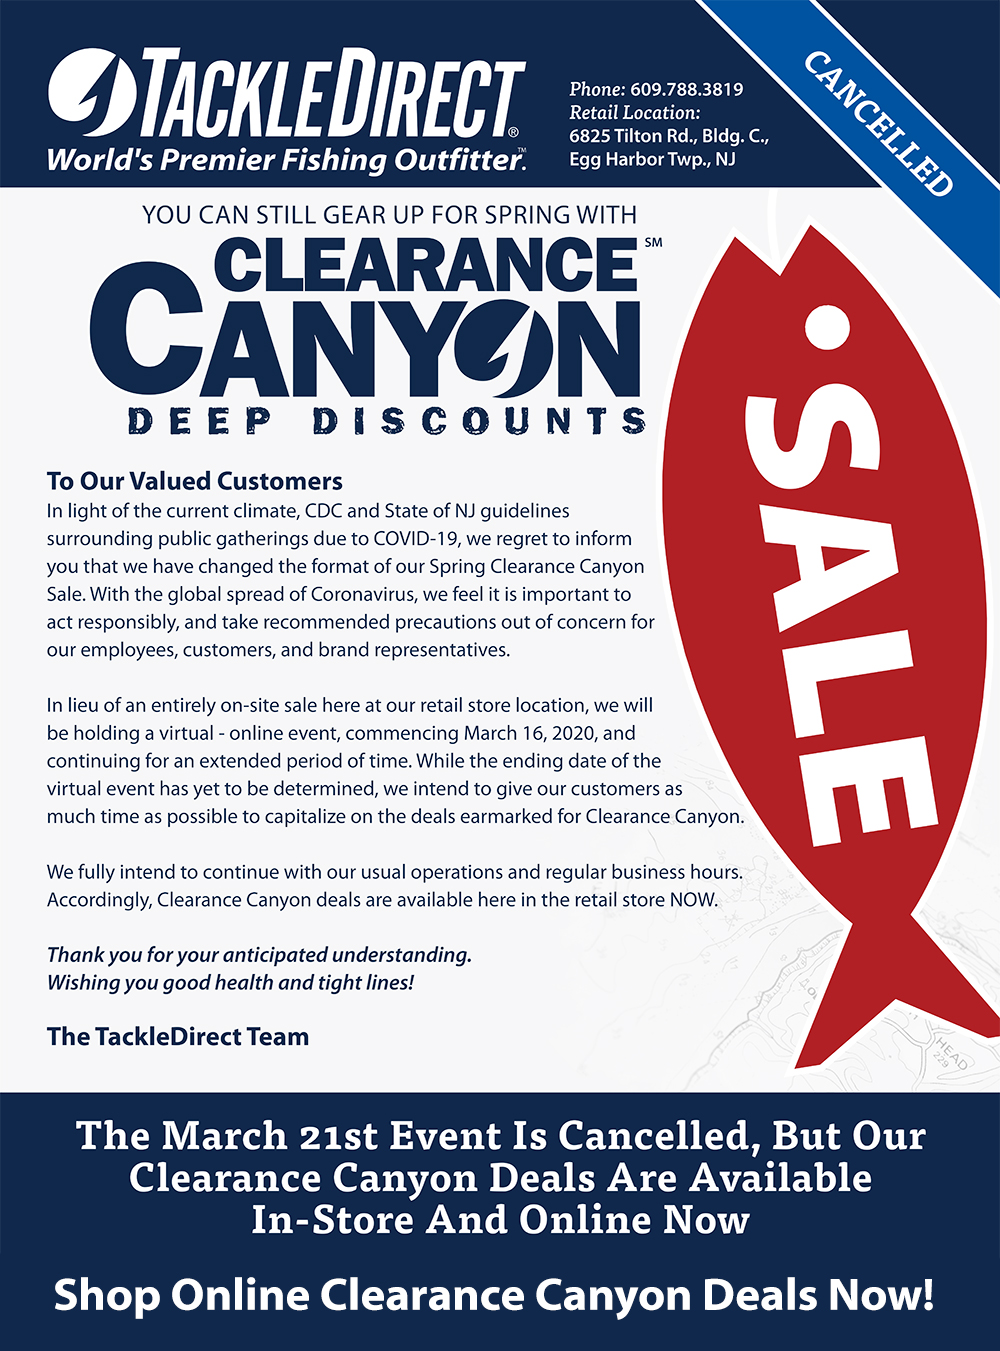 Virtual Clearance Canyon Sale at TackleDirect - Limited Time Only